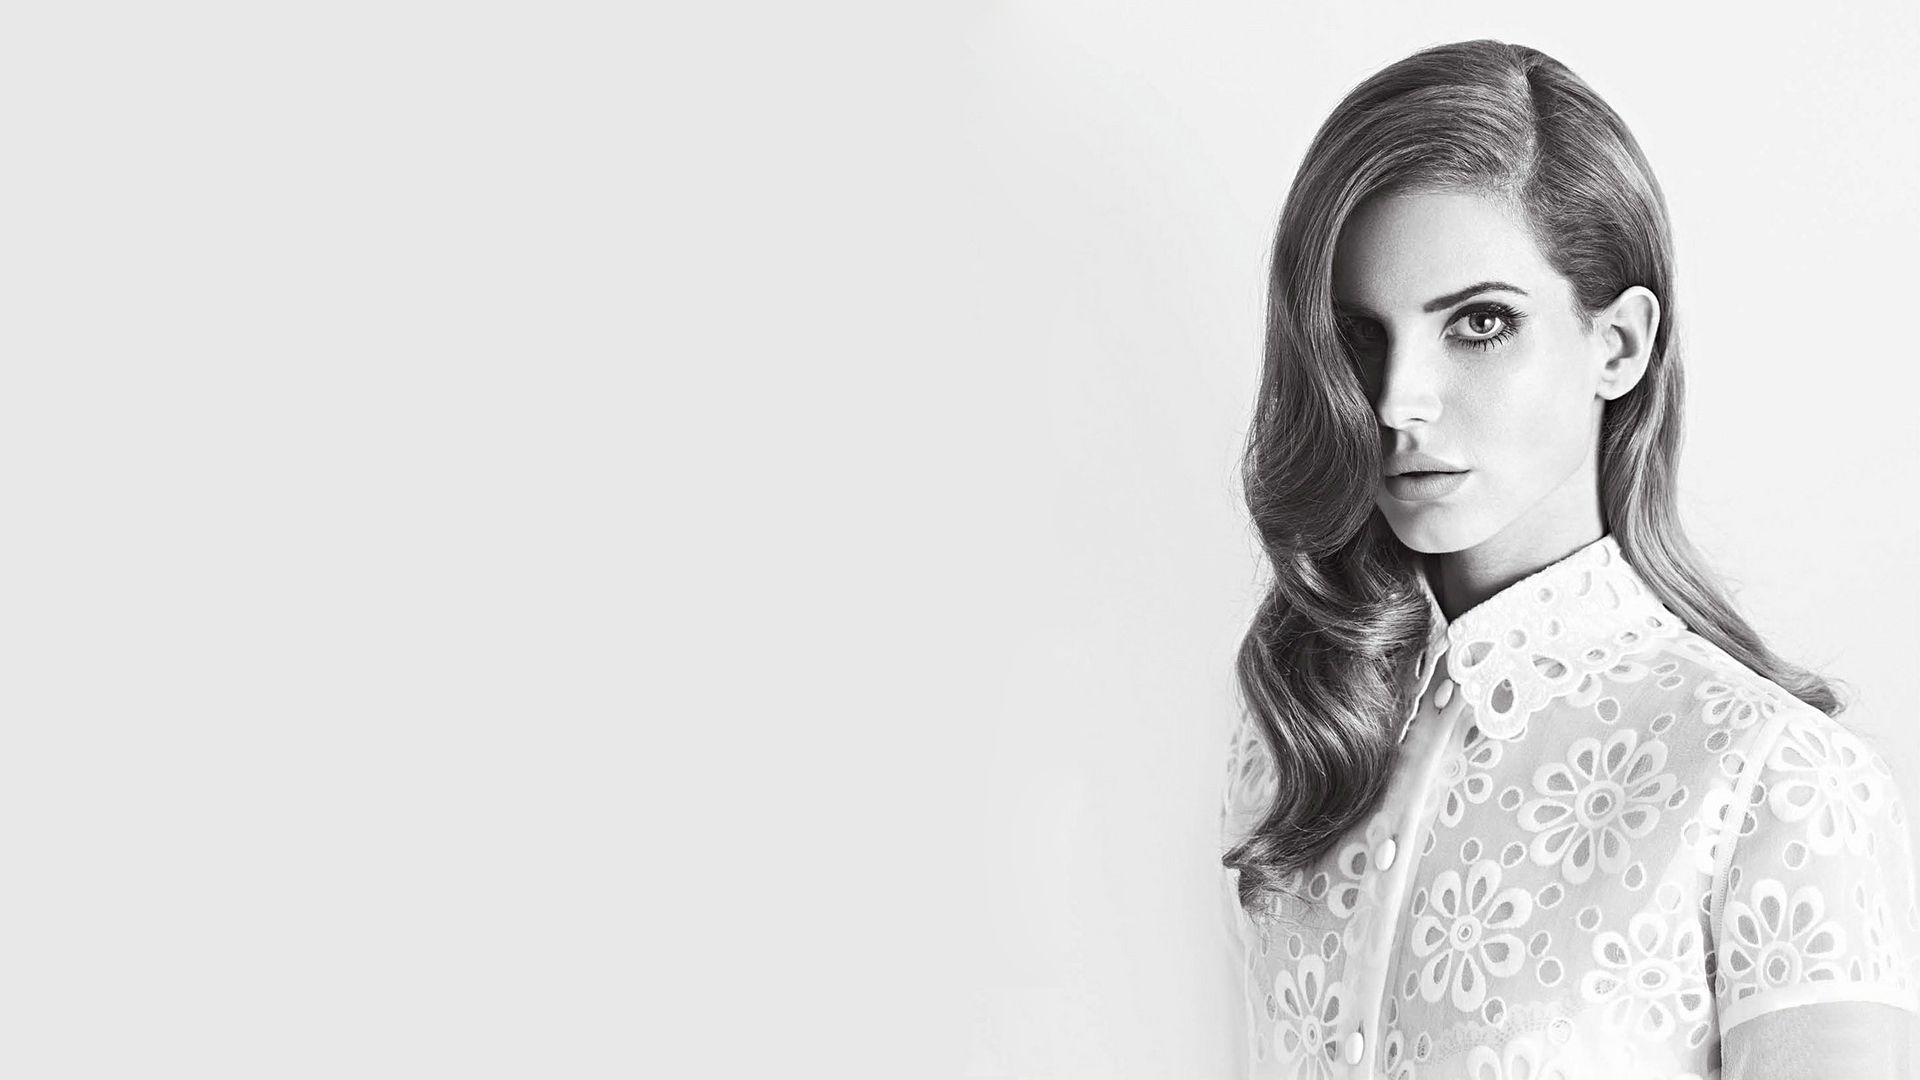 Lana Del Rey Wallpapers Wallpaper Cave